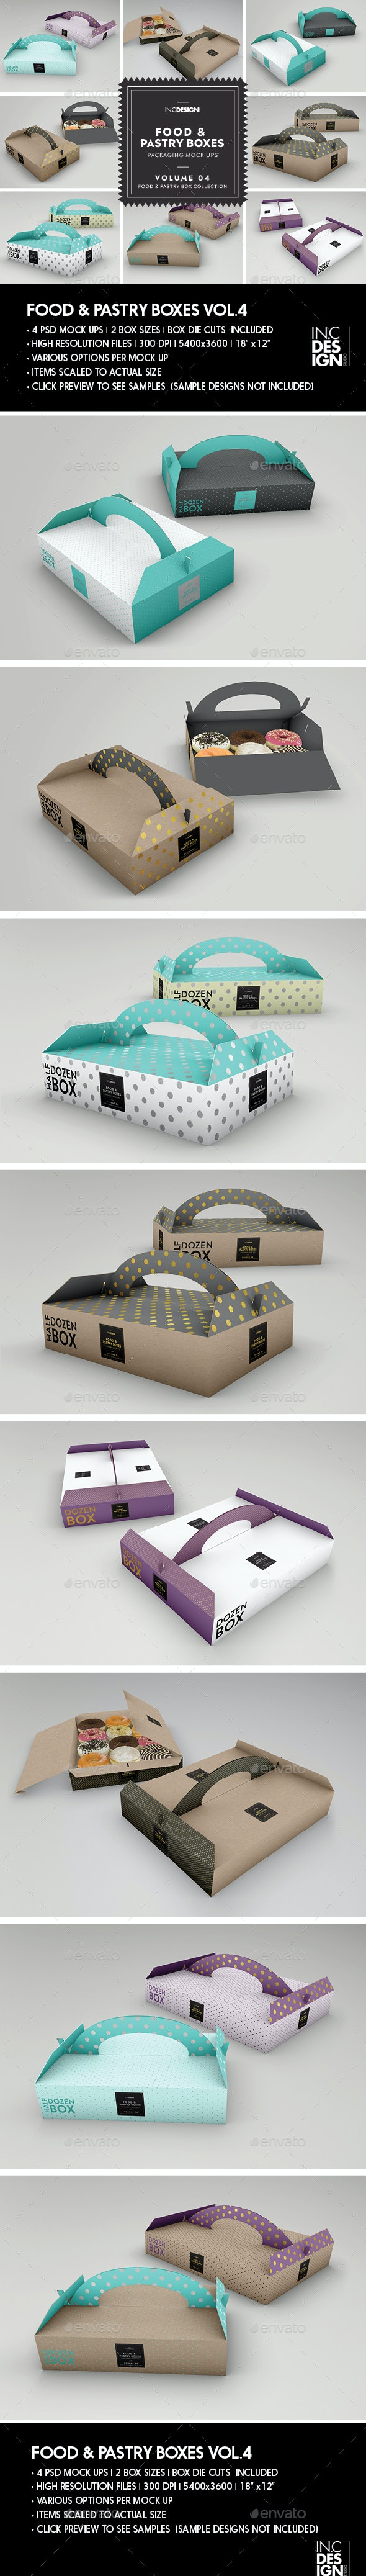 Food Pastry Boxes Vol.4: Donut | Pastry Carrier Take Out Packaging Mockups - Food and Drink Packaging